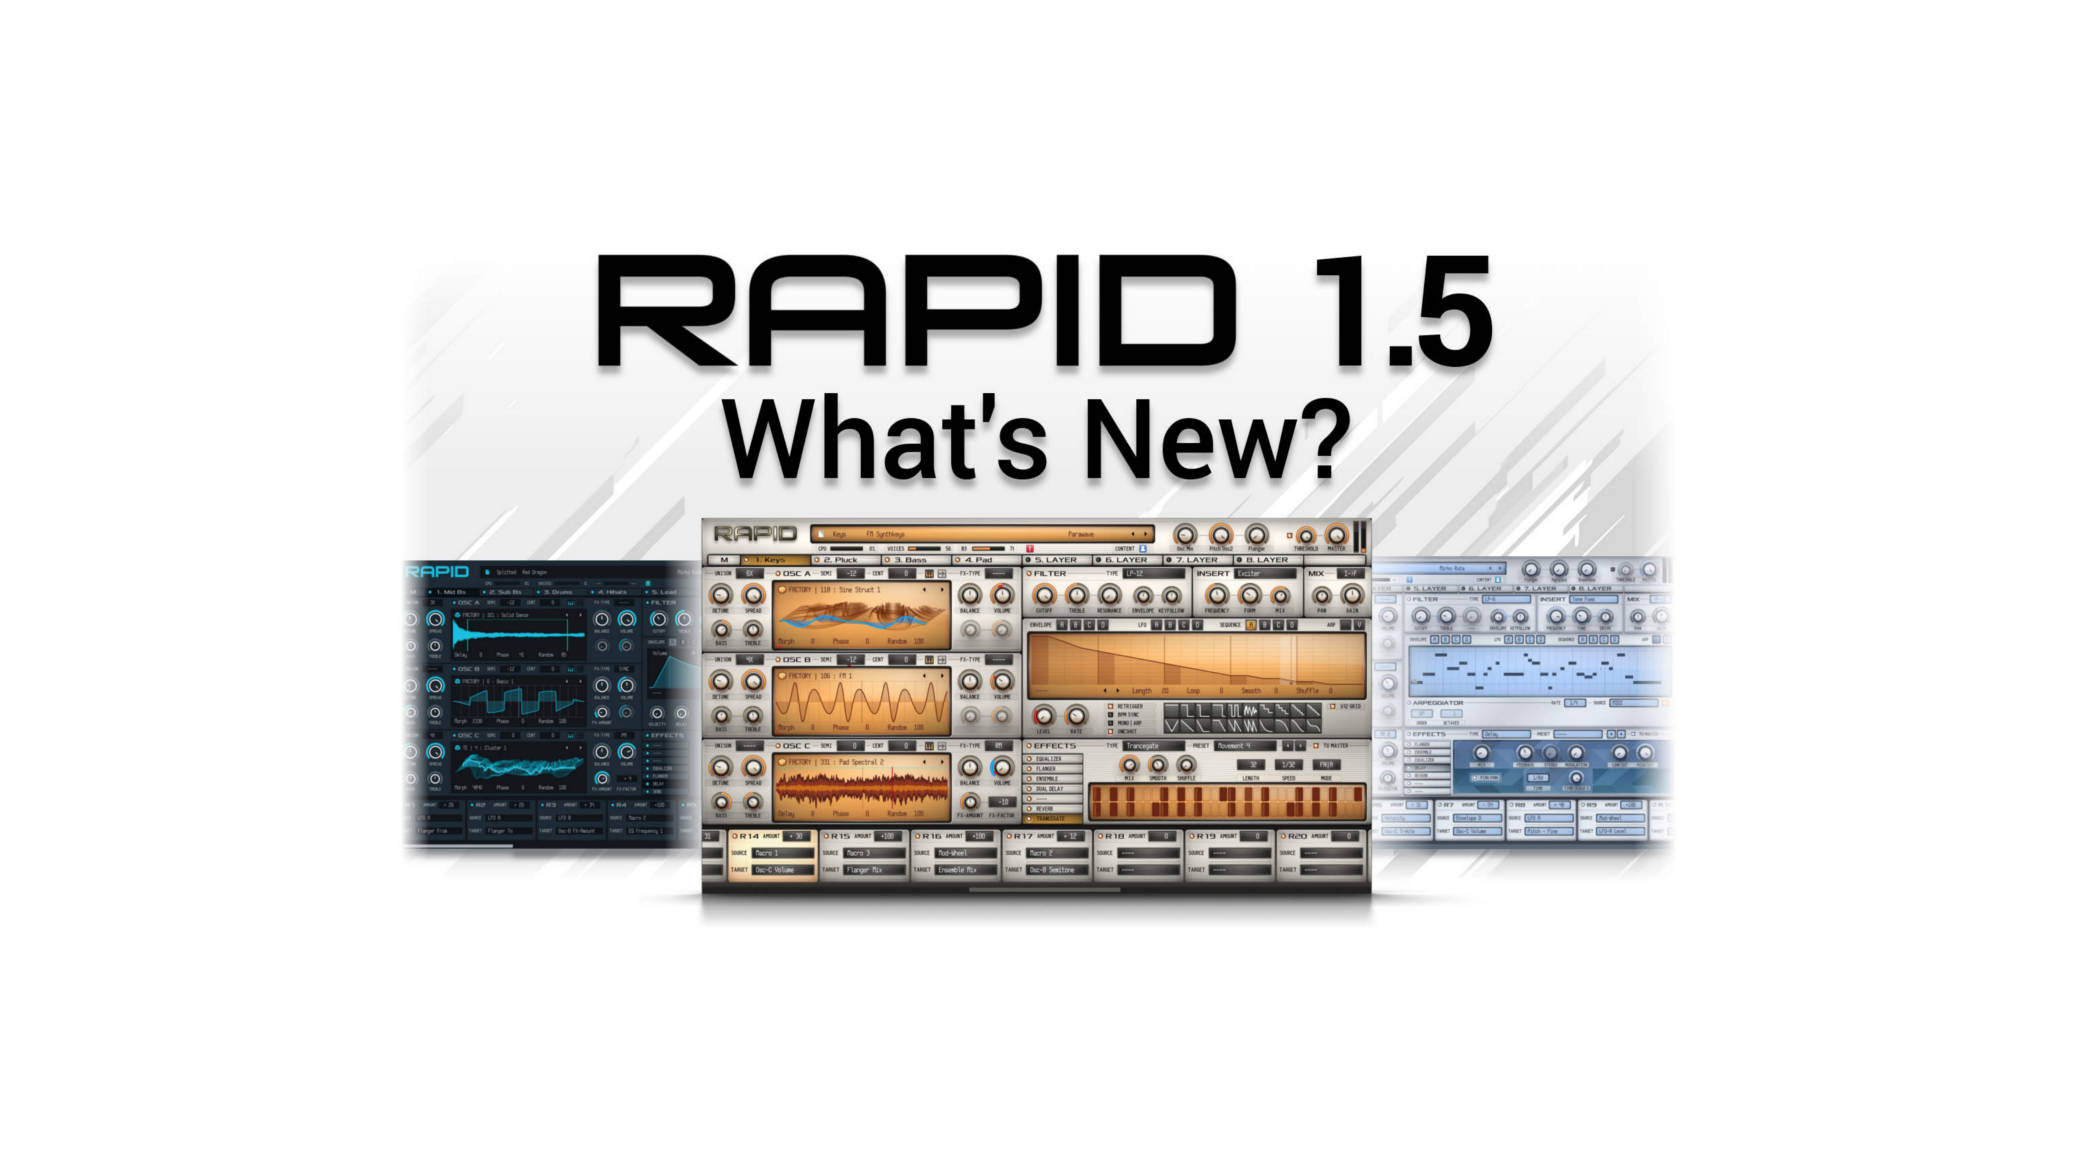 RAPID 1.5 - What's New?